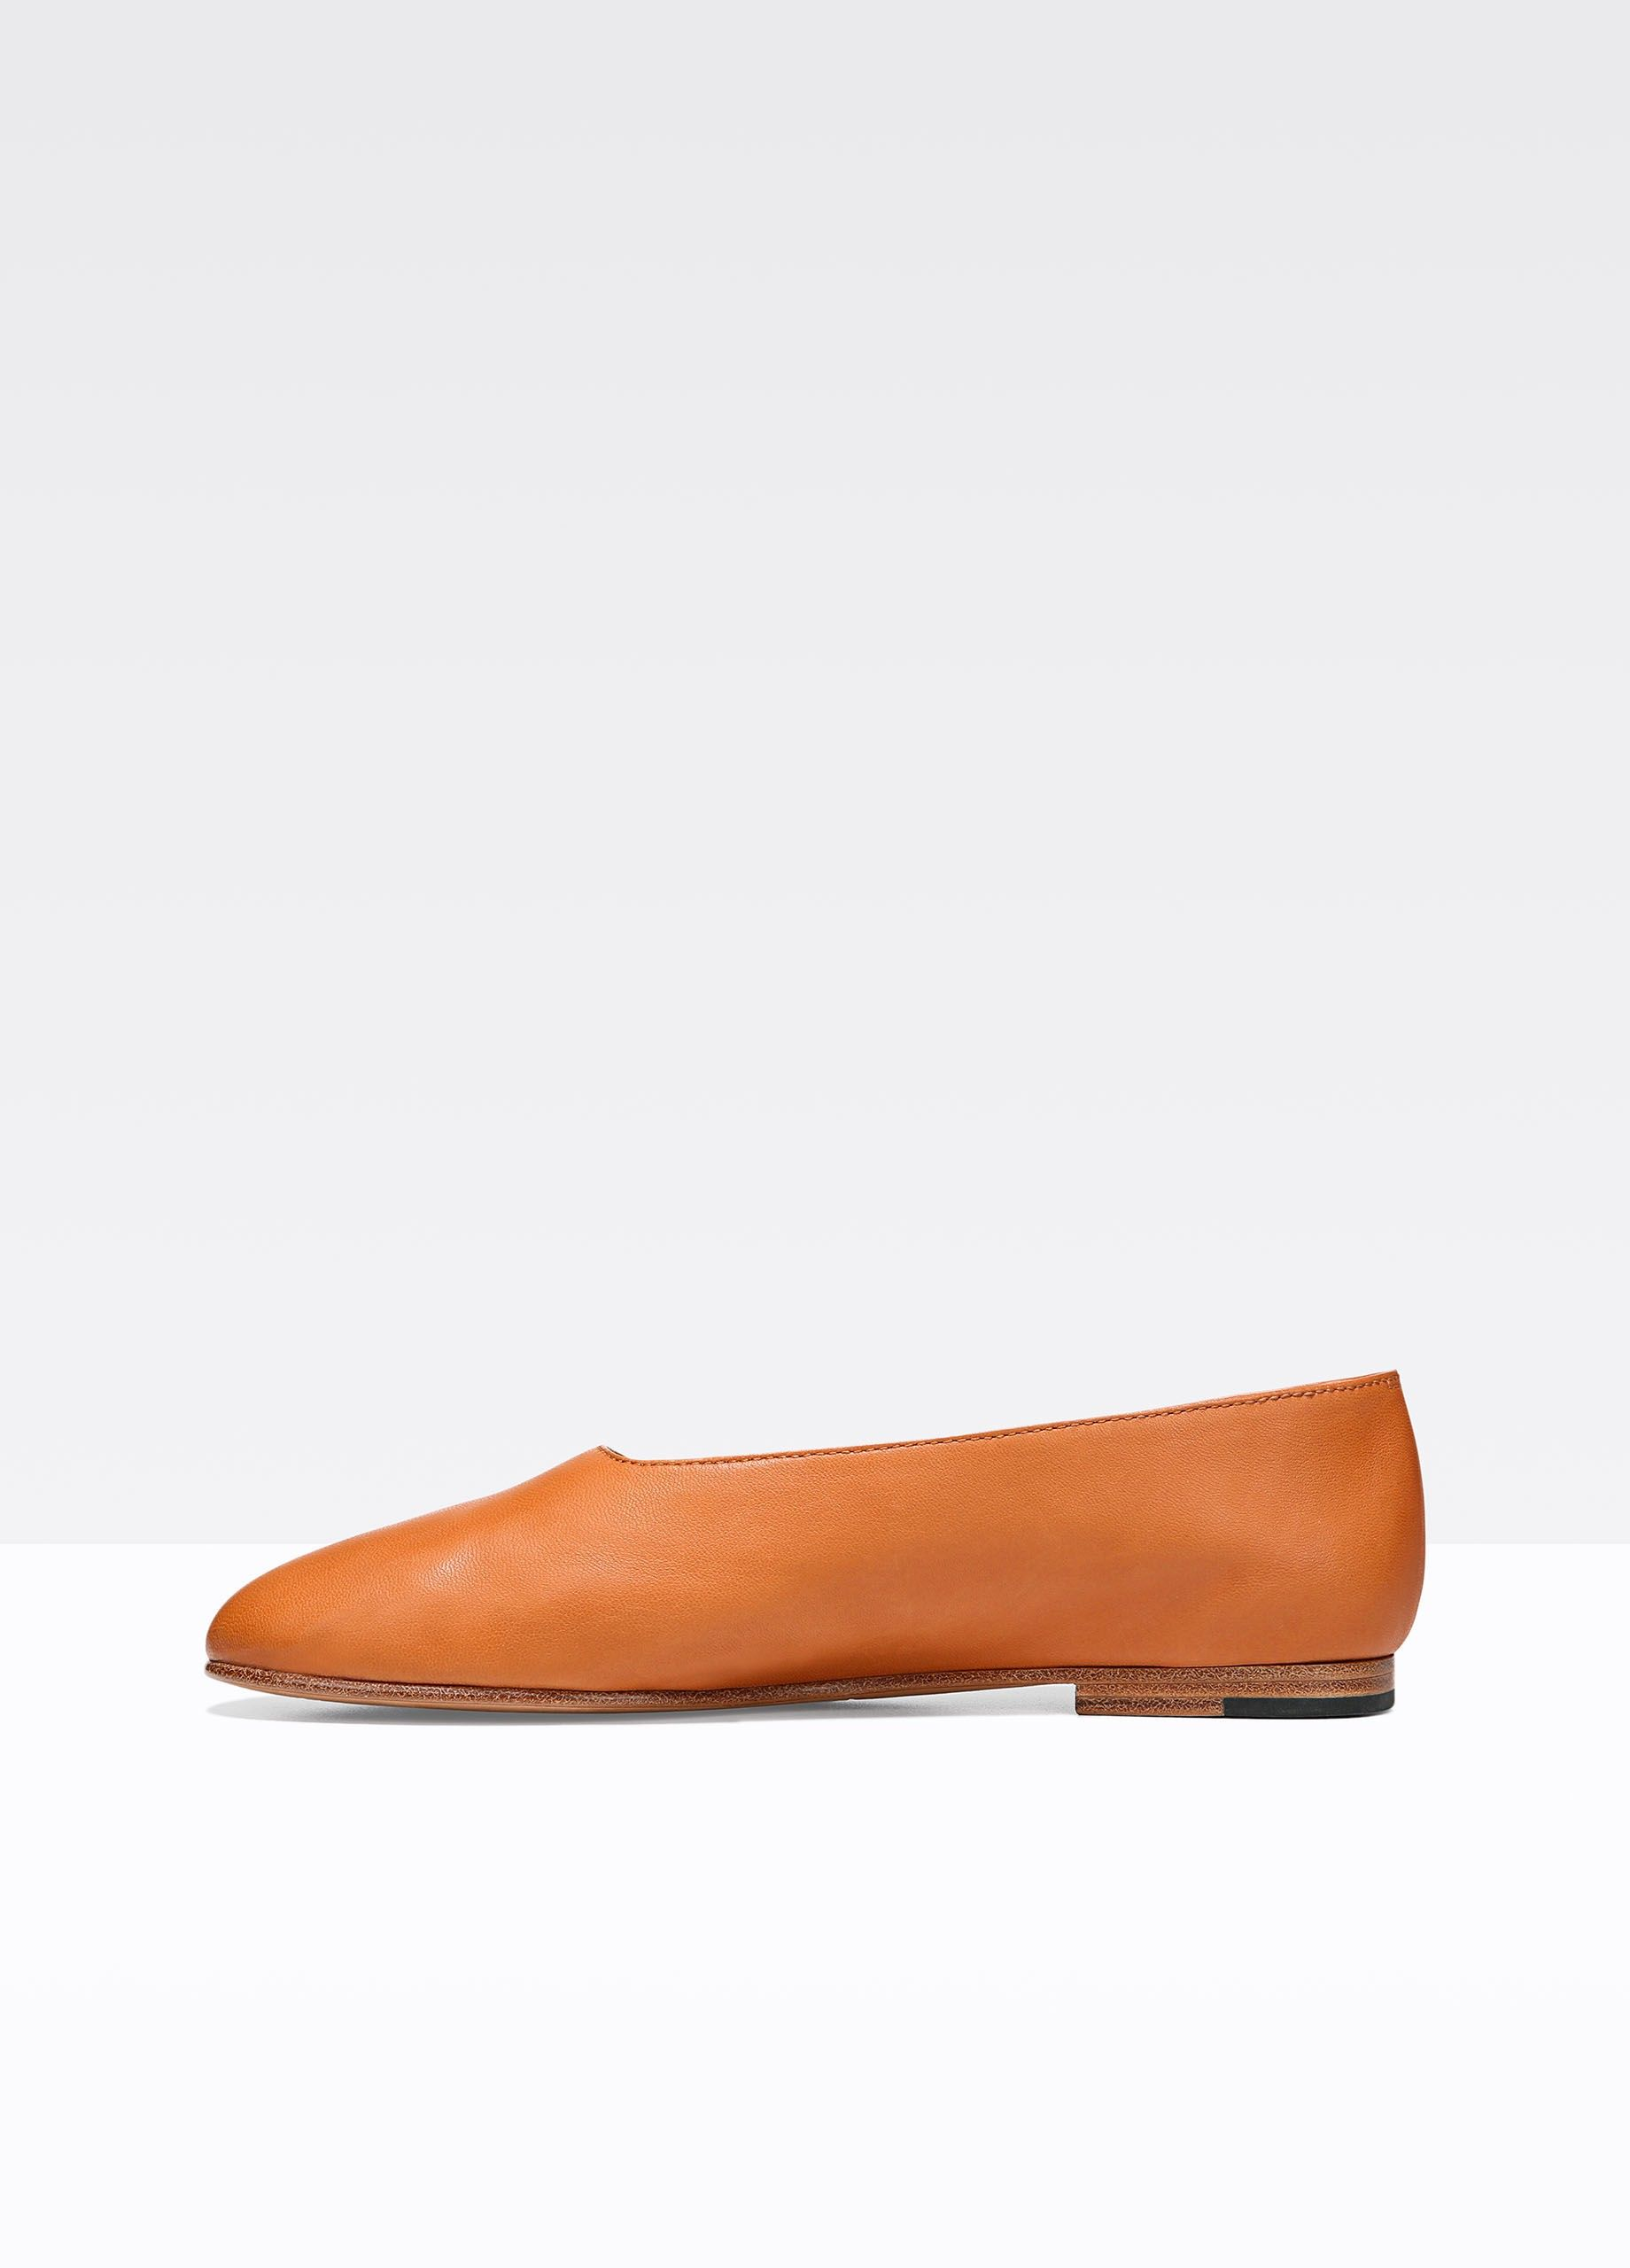 4d0a147f9 VINCE Maxwell Leather Flat - Saddle Tan. #vince #shoes #all | Vince ...